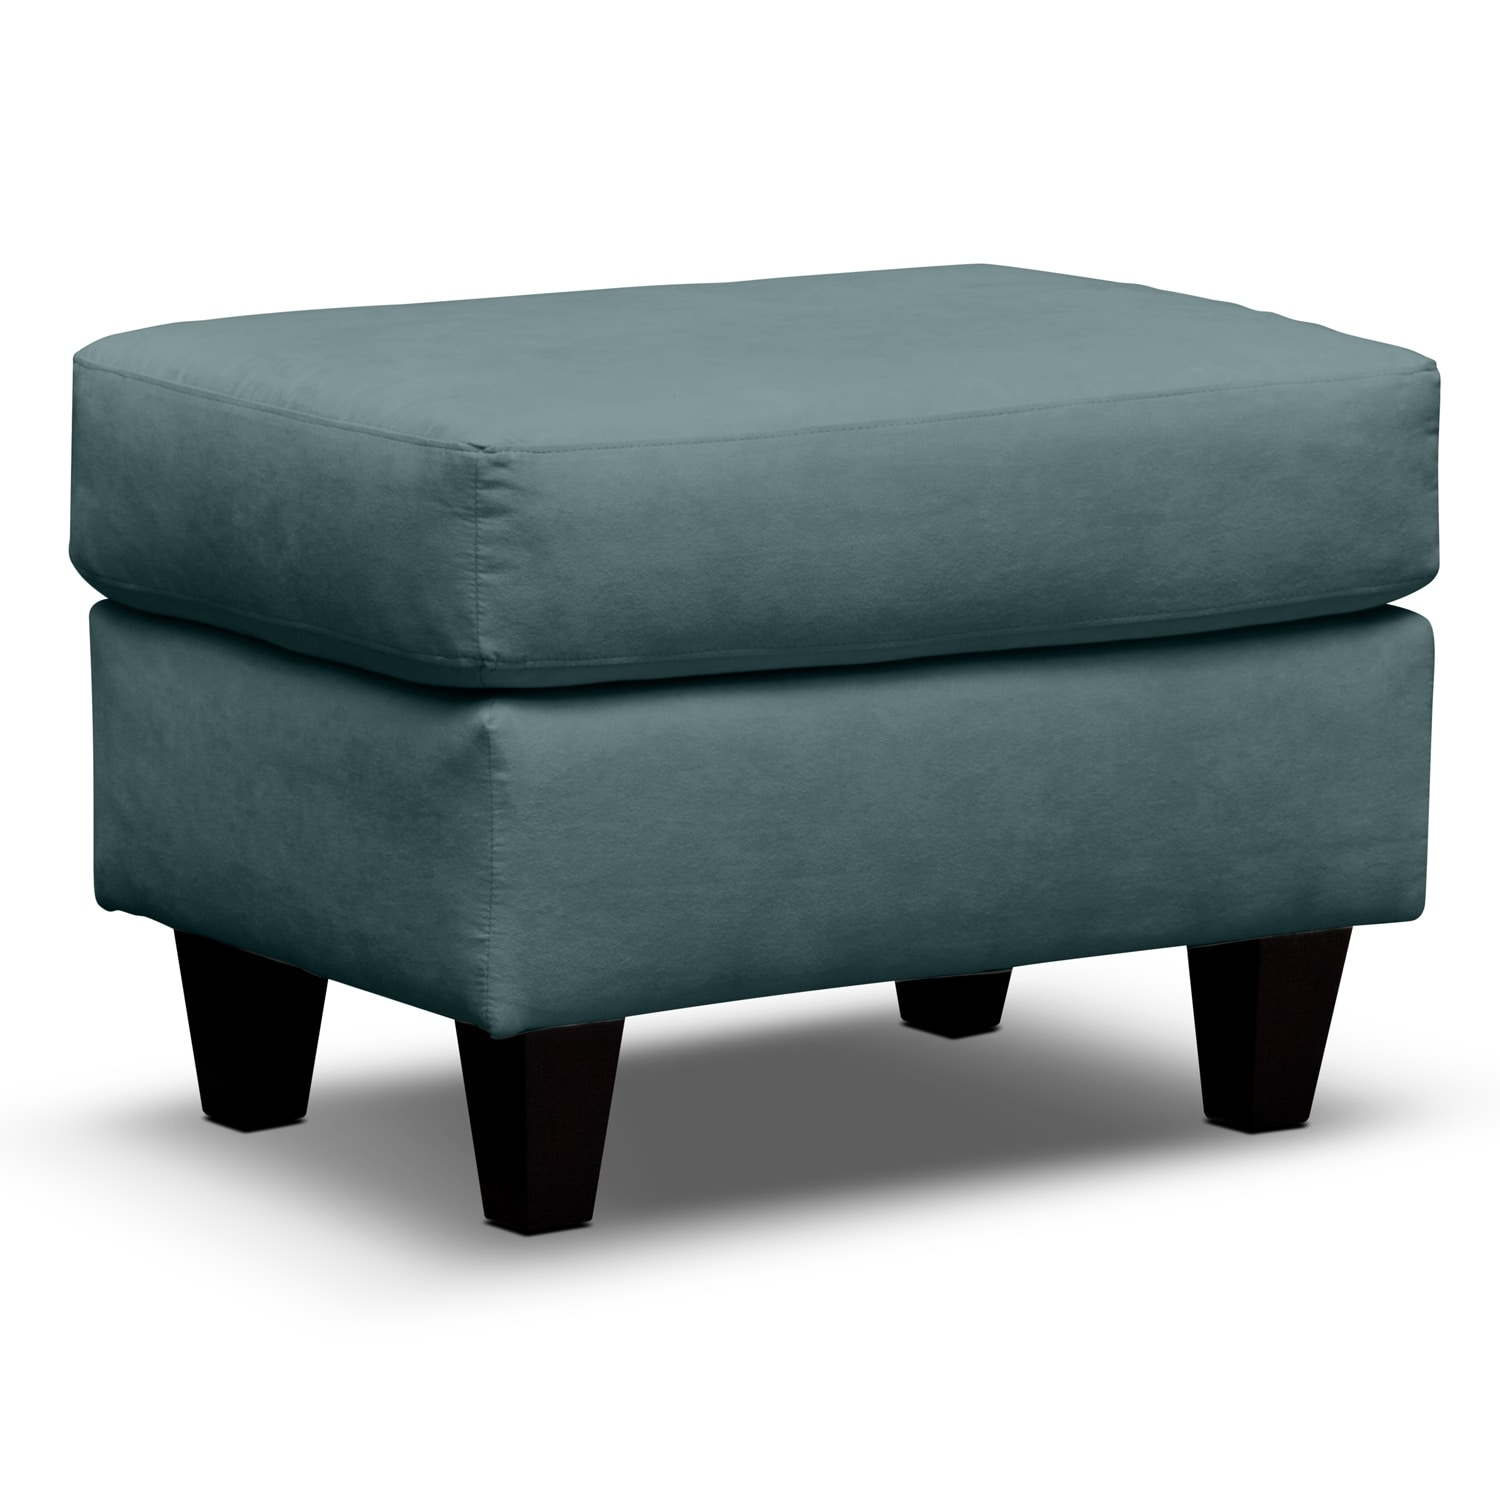 Living Room Furniture - West Village Blue Ottoman